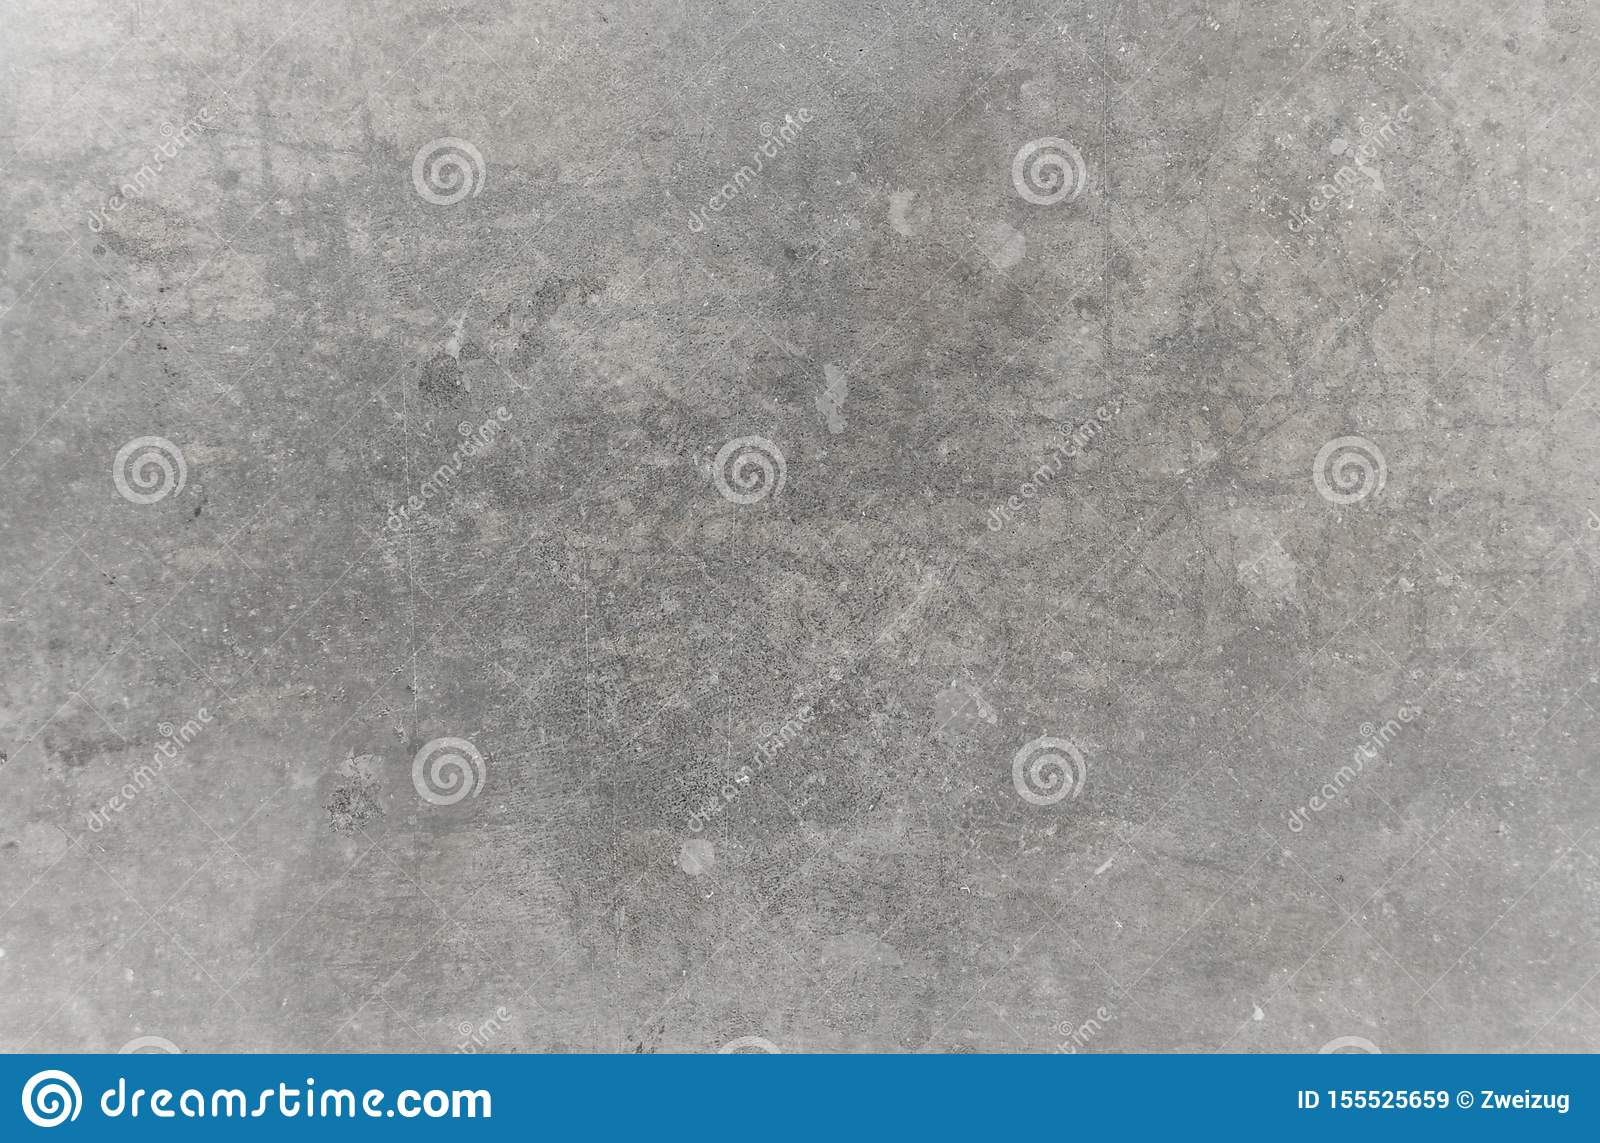 Stone marble conceptual texture background no. 508